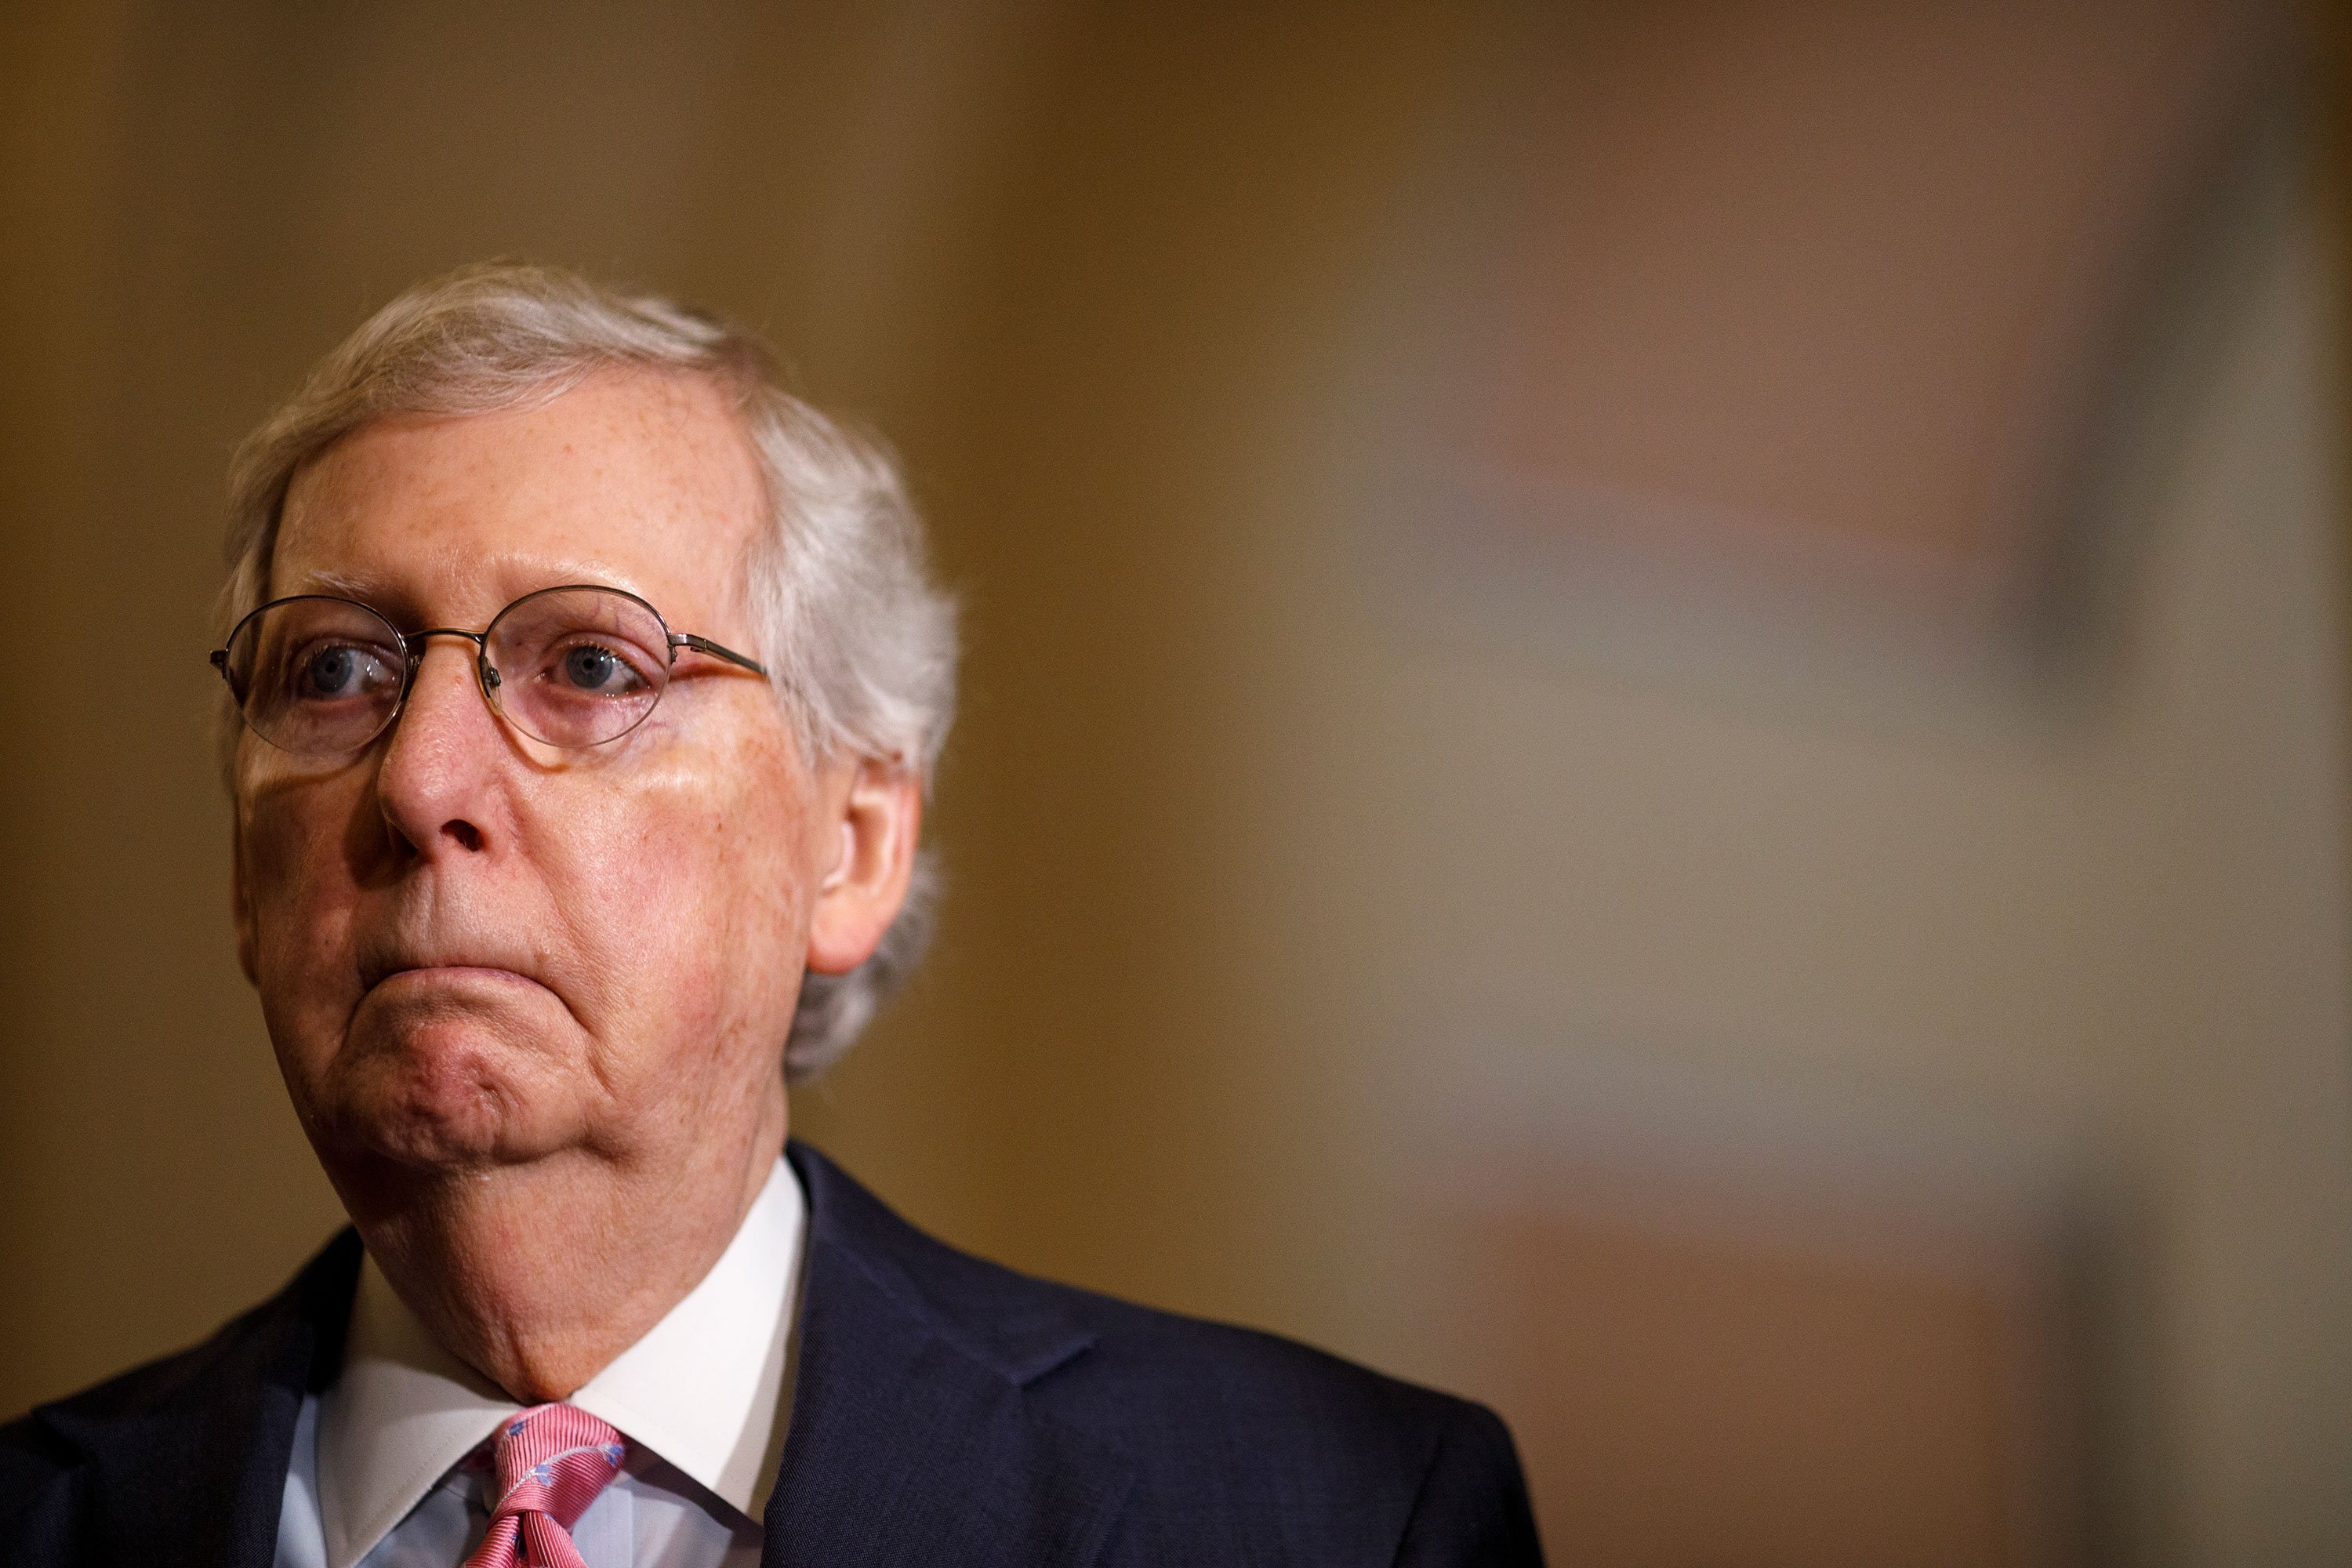 McConnell previews Senate impeachment trial and speculates it could end by Christmas